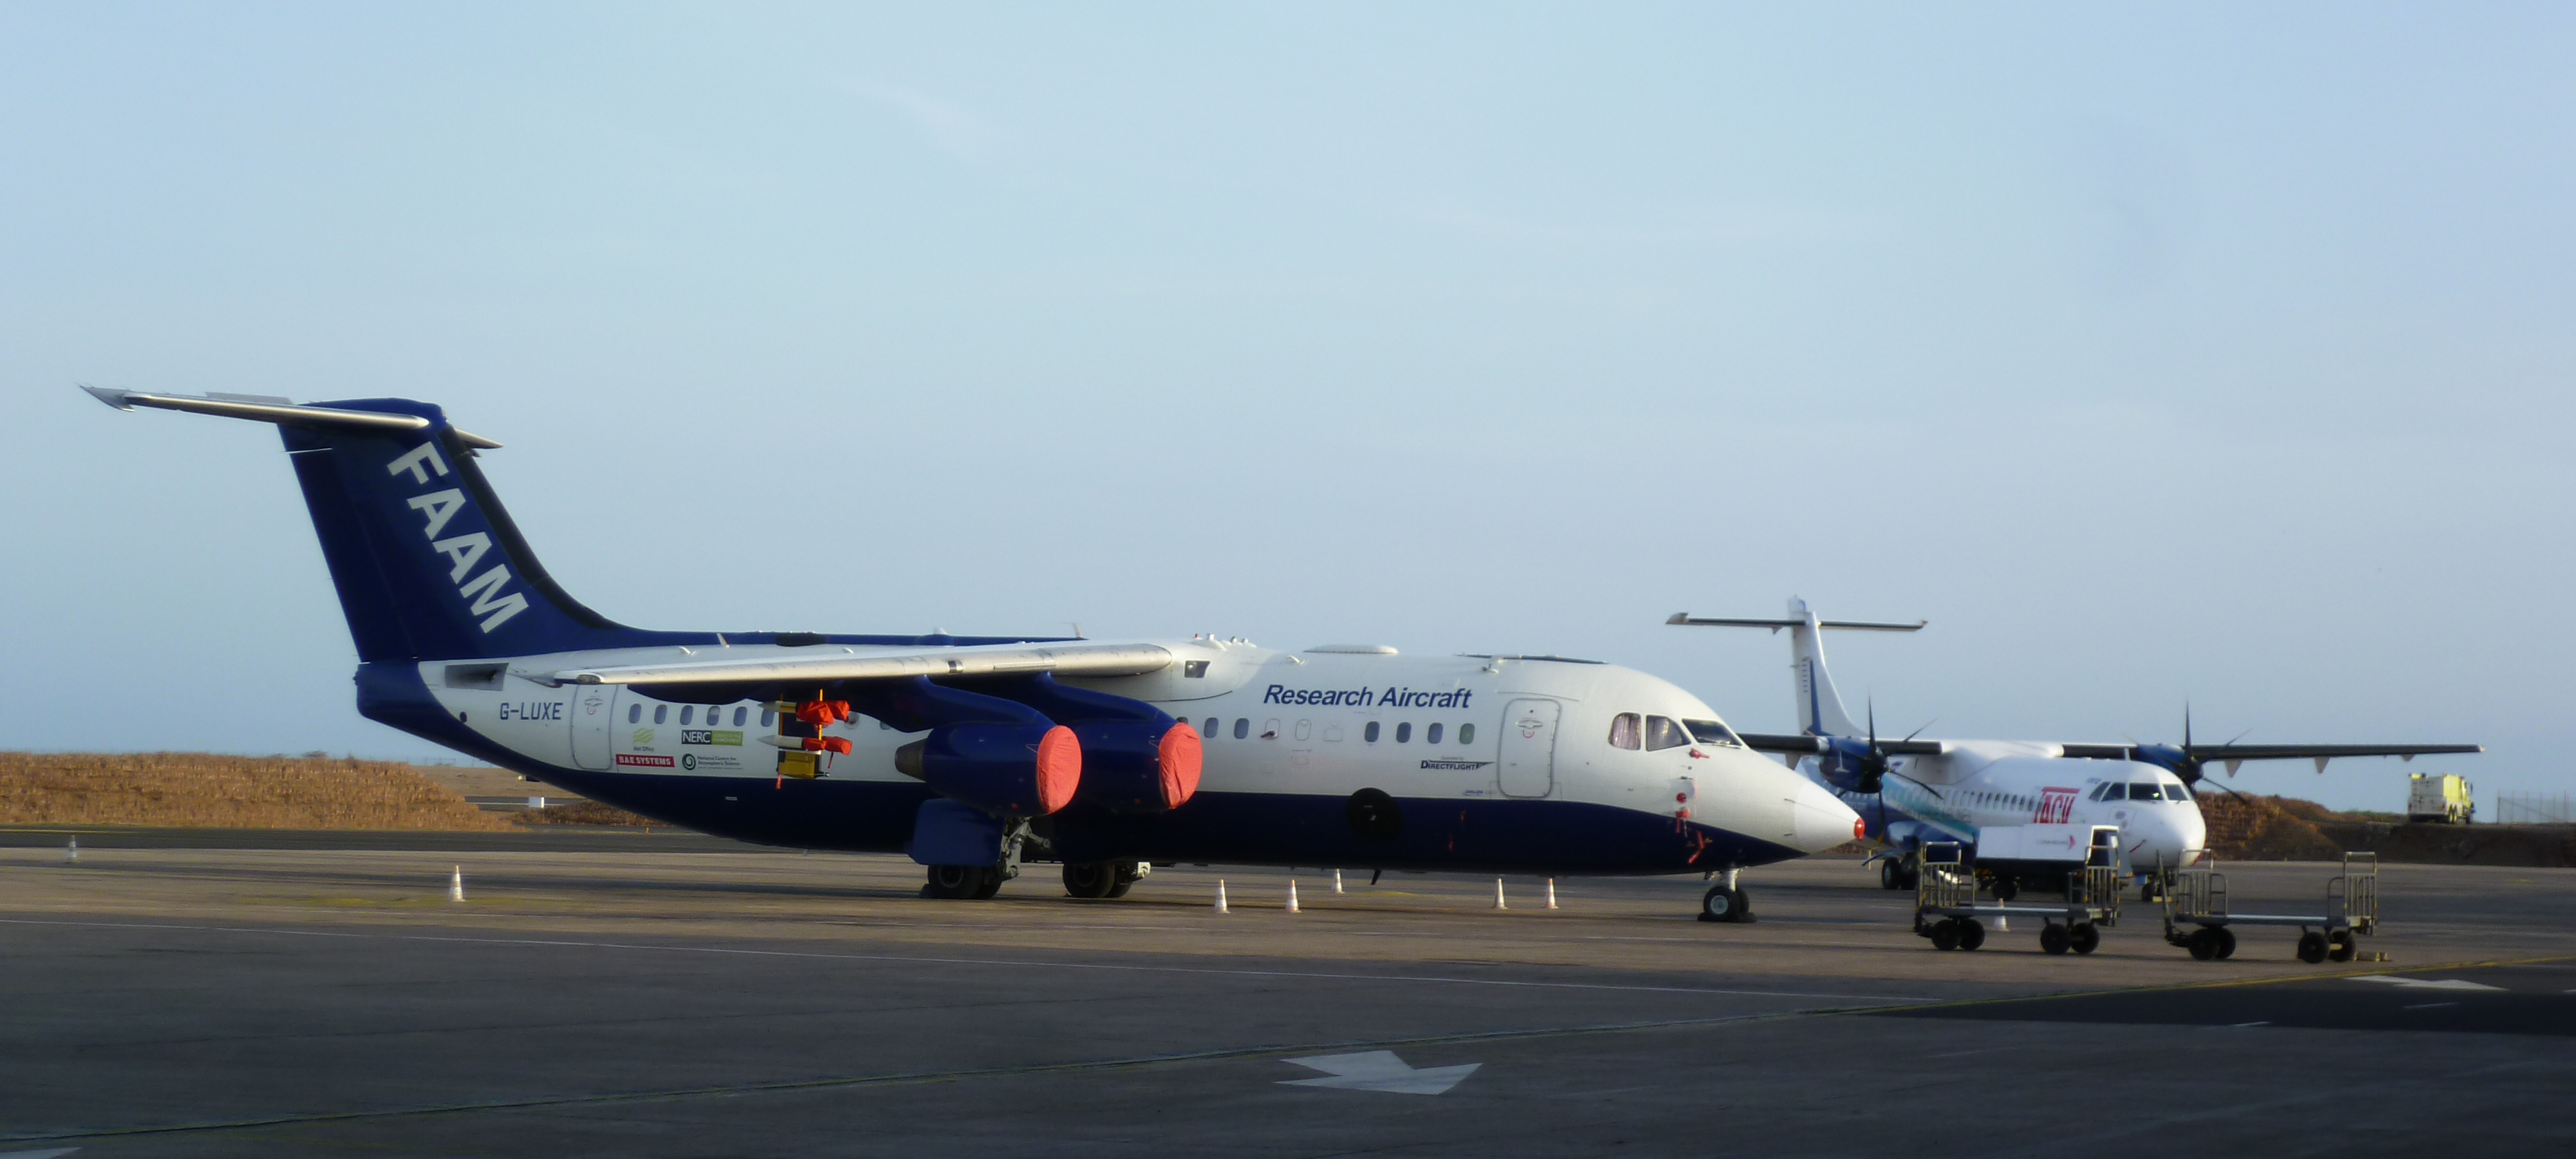 The FAAM BAe-146 aircraft parked at Praia airport (Cape Verde). Photo credit - Dr. Lindsay Bennet. SAVEX-D flight campaign.